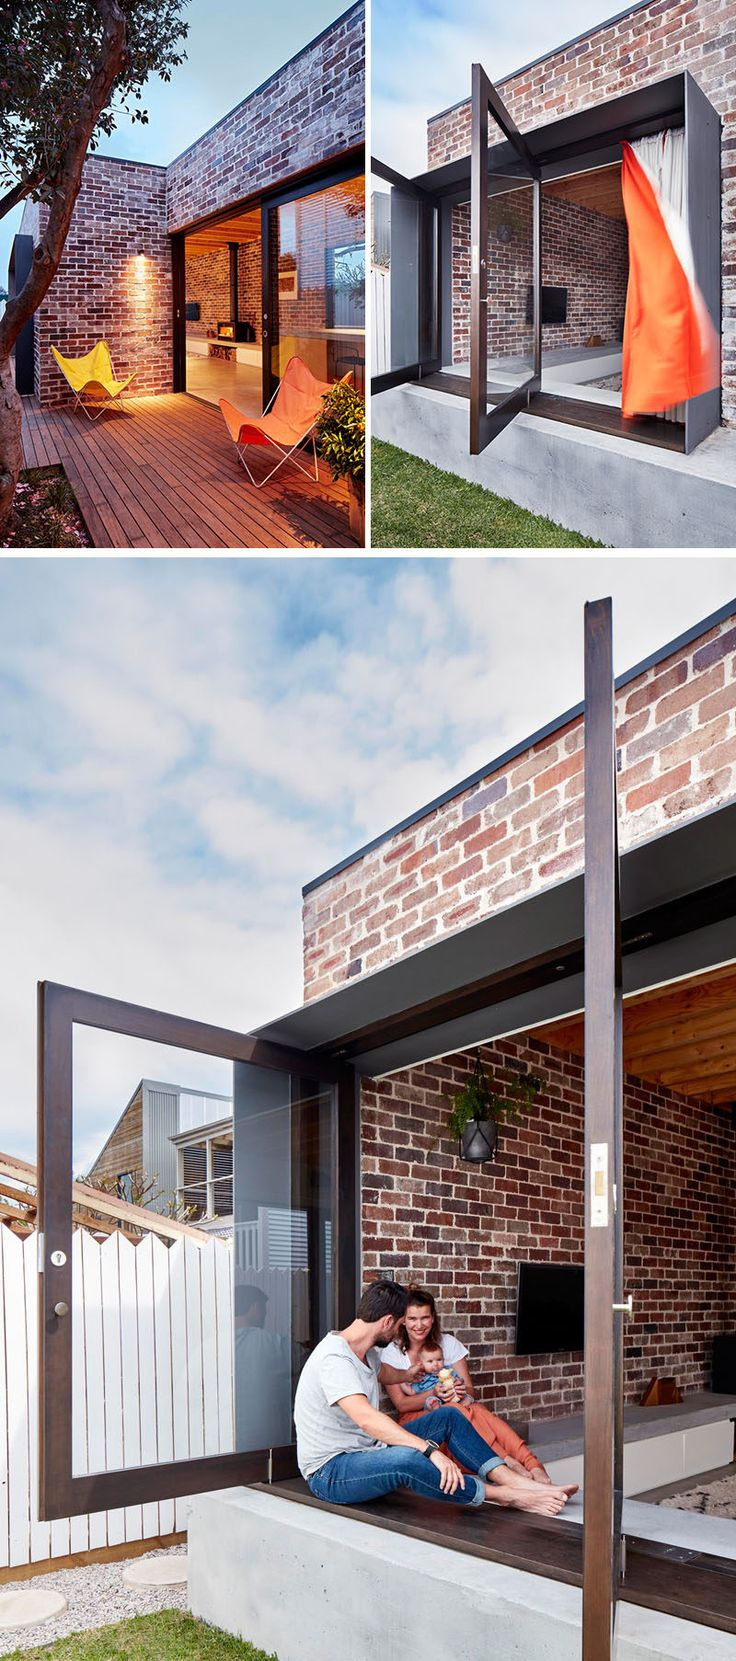 best 25+ brick houses ideas only on pinterest | brick homes, brick